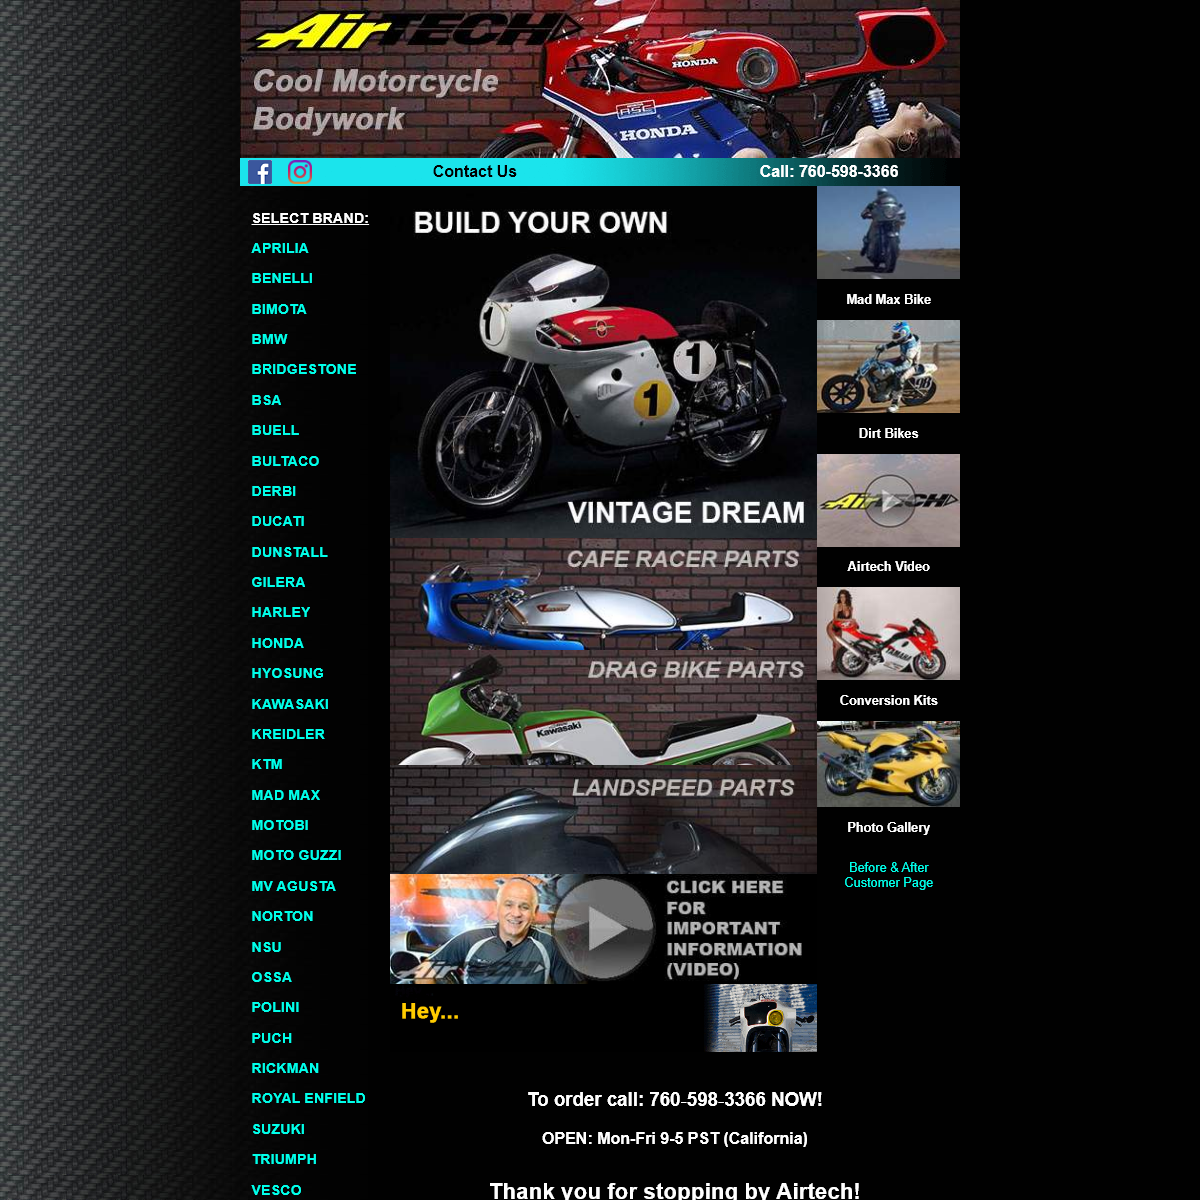 Fairings, Seats, Fenders, Tails, Belly Pans, Parts - AirTech